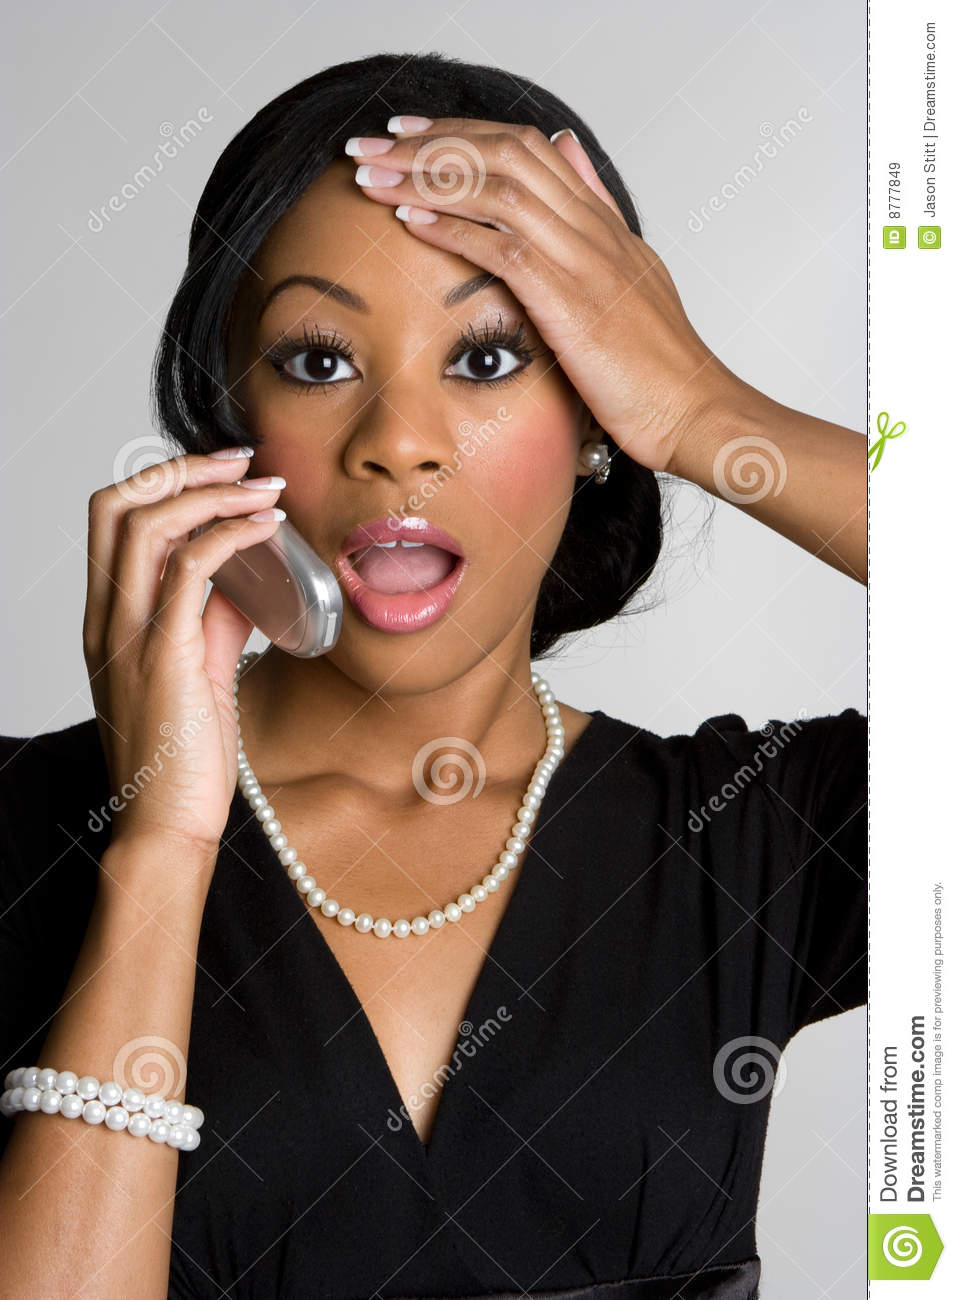 Surprised Phone Woman Stock Image Image Of Young, American - 8777849-2021